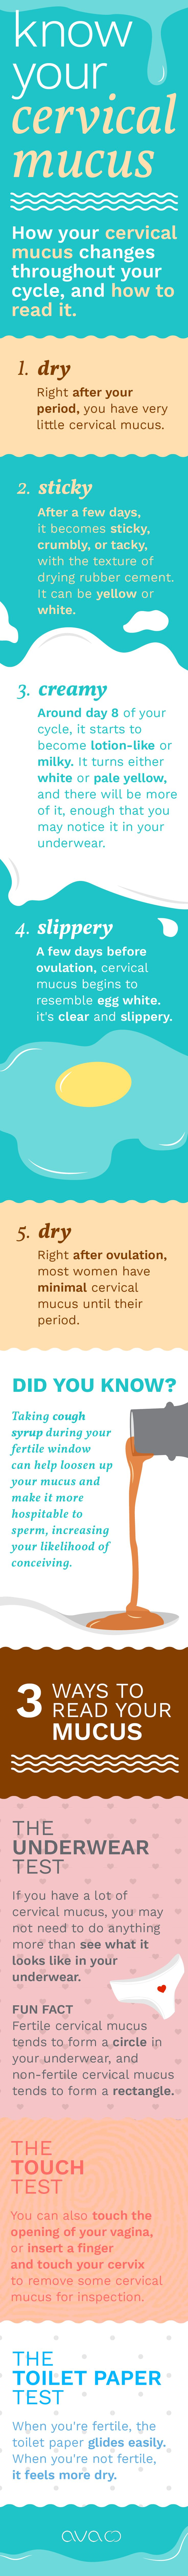 Your cervical mucus speaks volumes, if you know how to read it. Learn what it can tell you about your health and fertility. http://www.avawomen.com/avaworld/hidden-messages-cervical-mucus/?utm_medium=social&utm_source=pinterest&utm_campaign=Post_052416